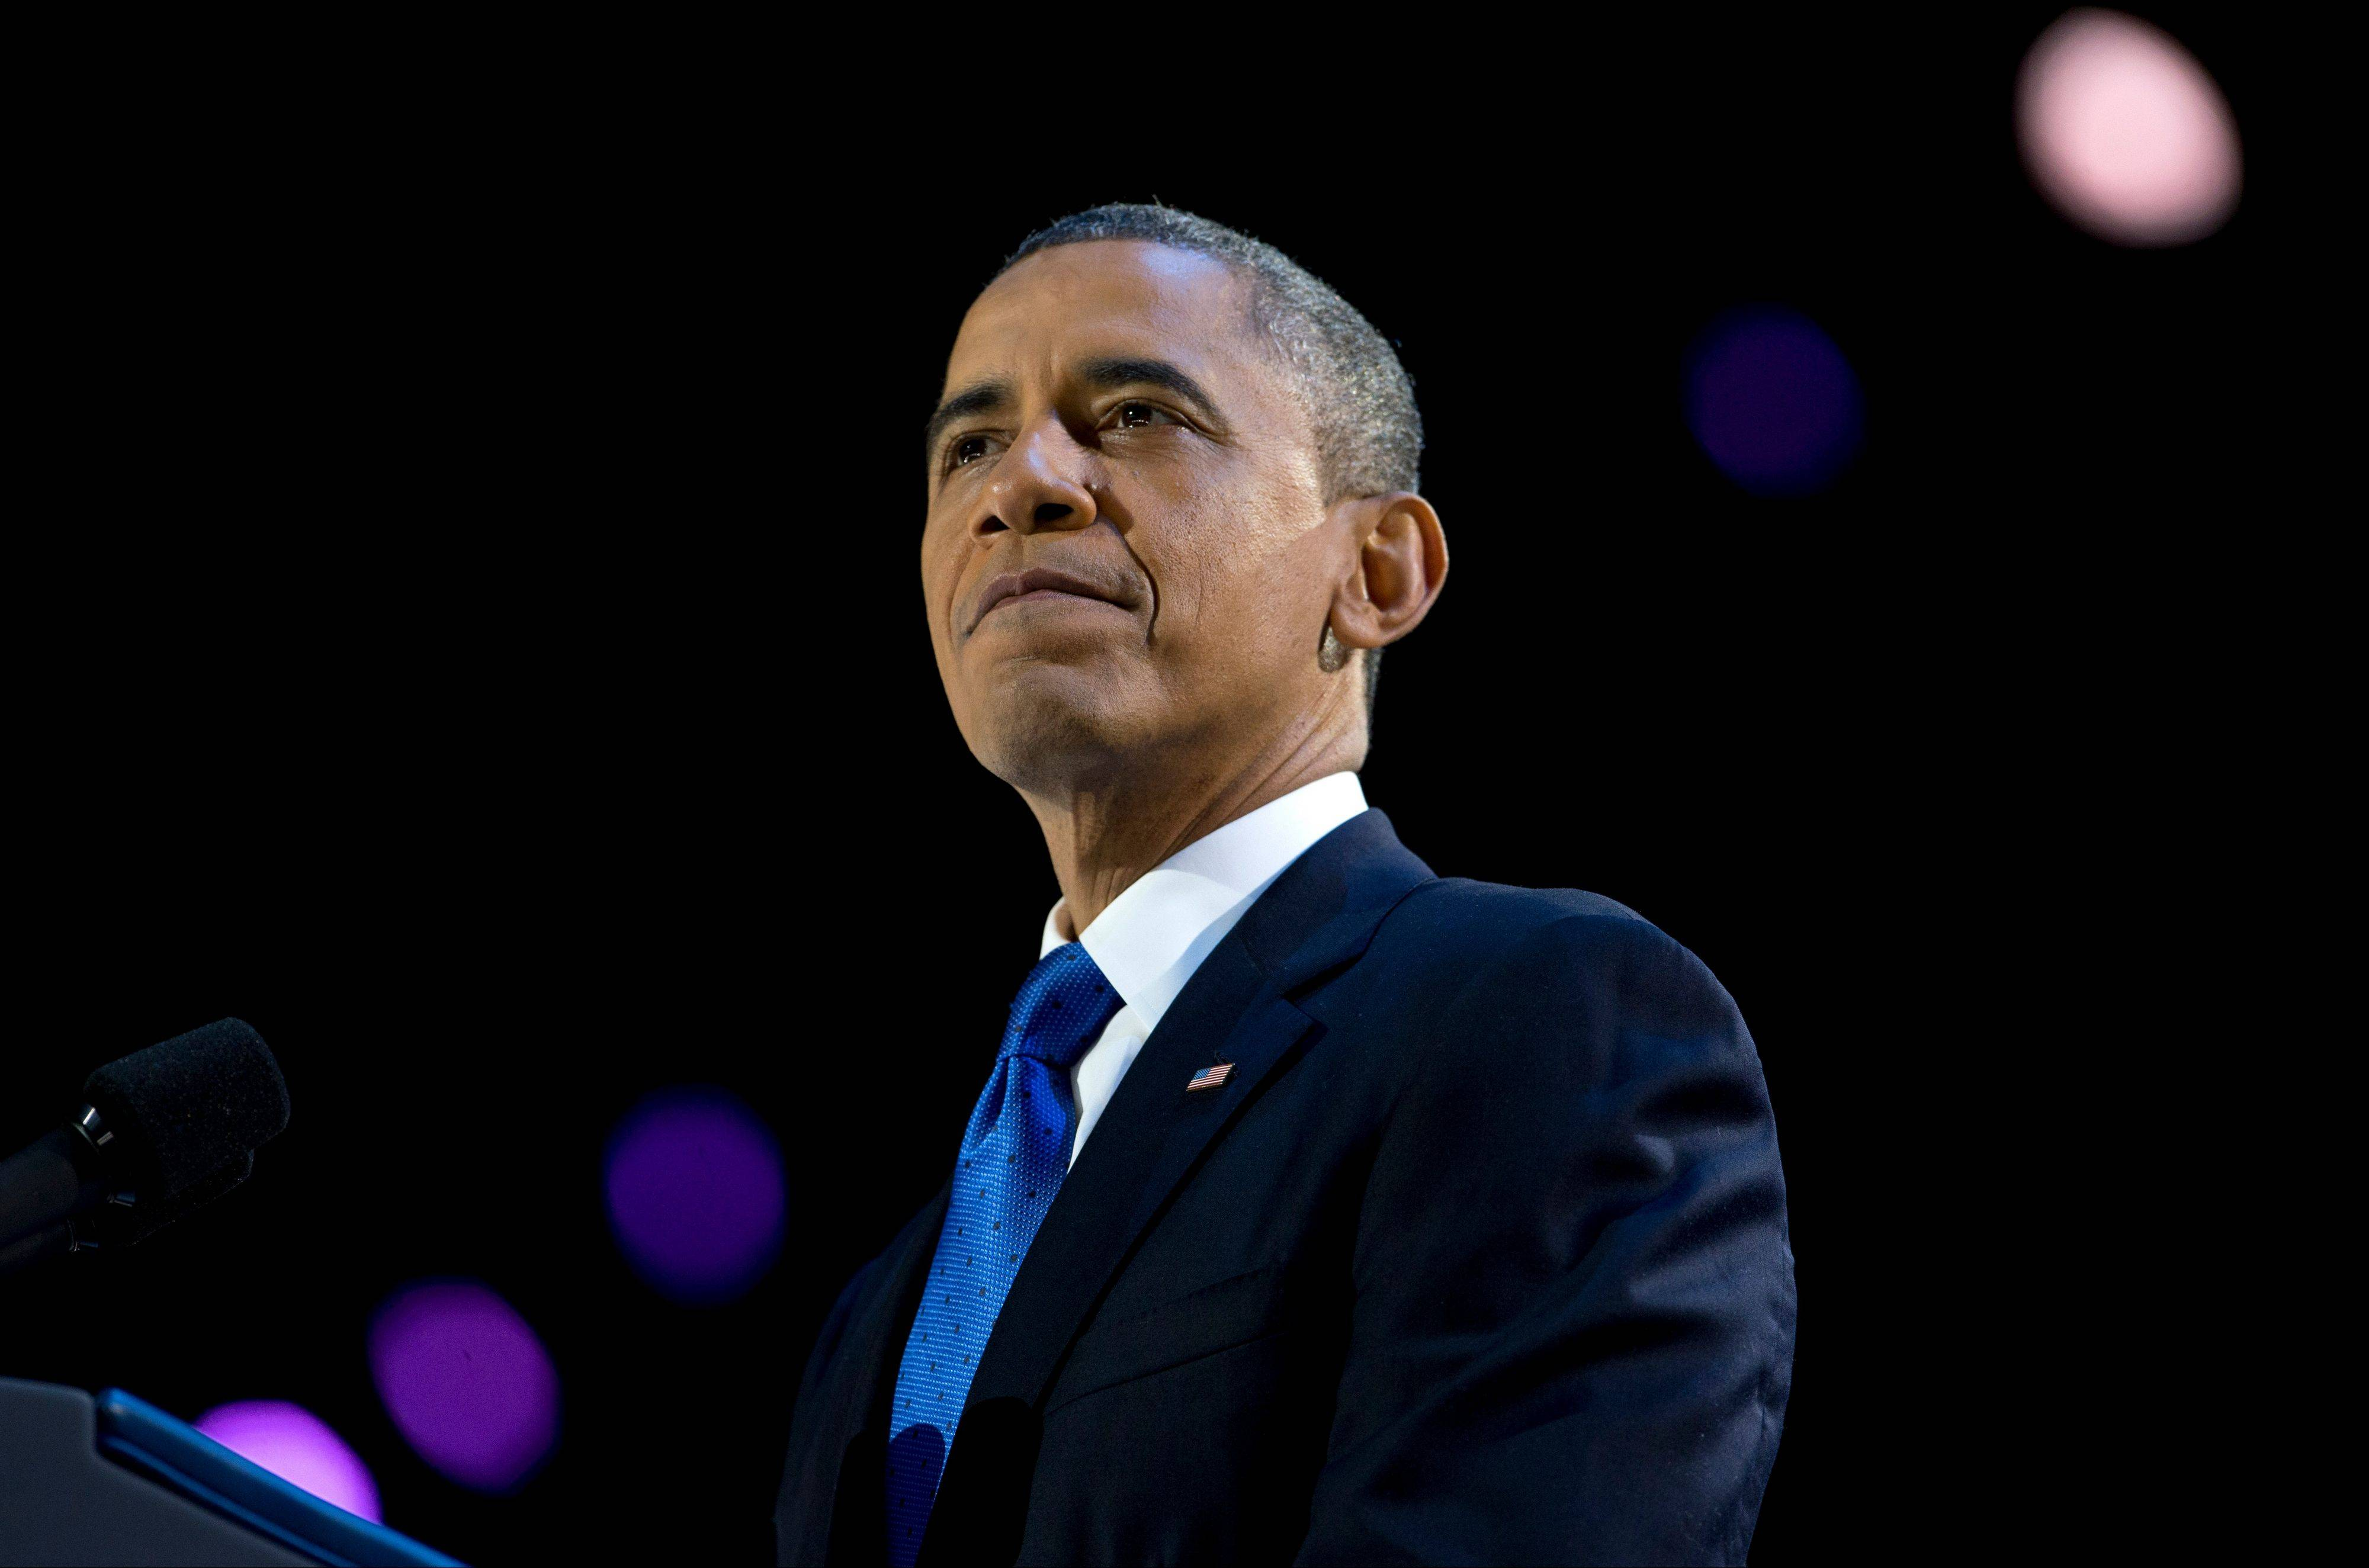 Dawn Patrol/election night review: Obama doesn't quite sweep suburbs